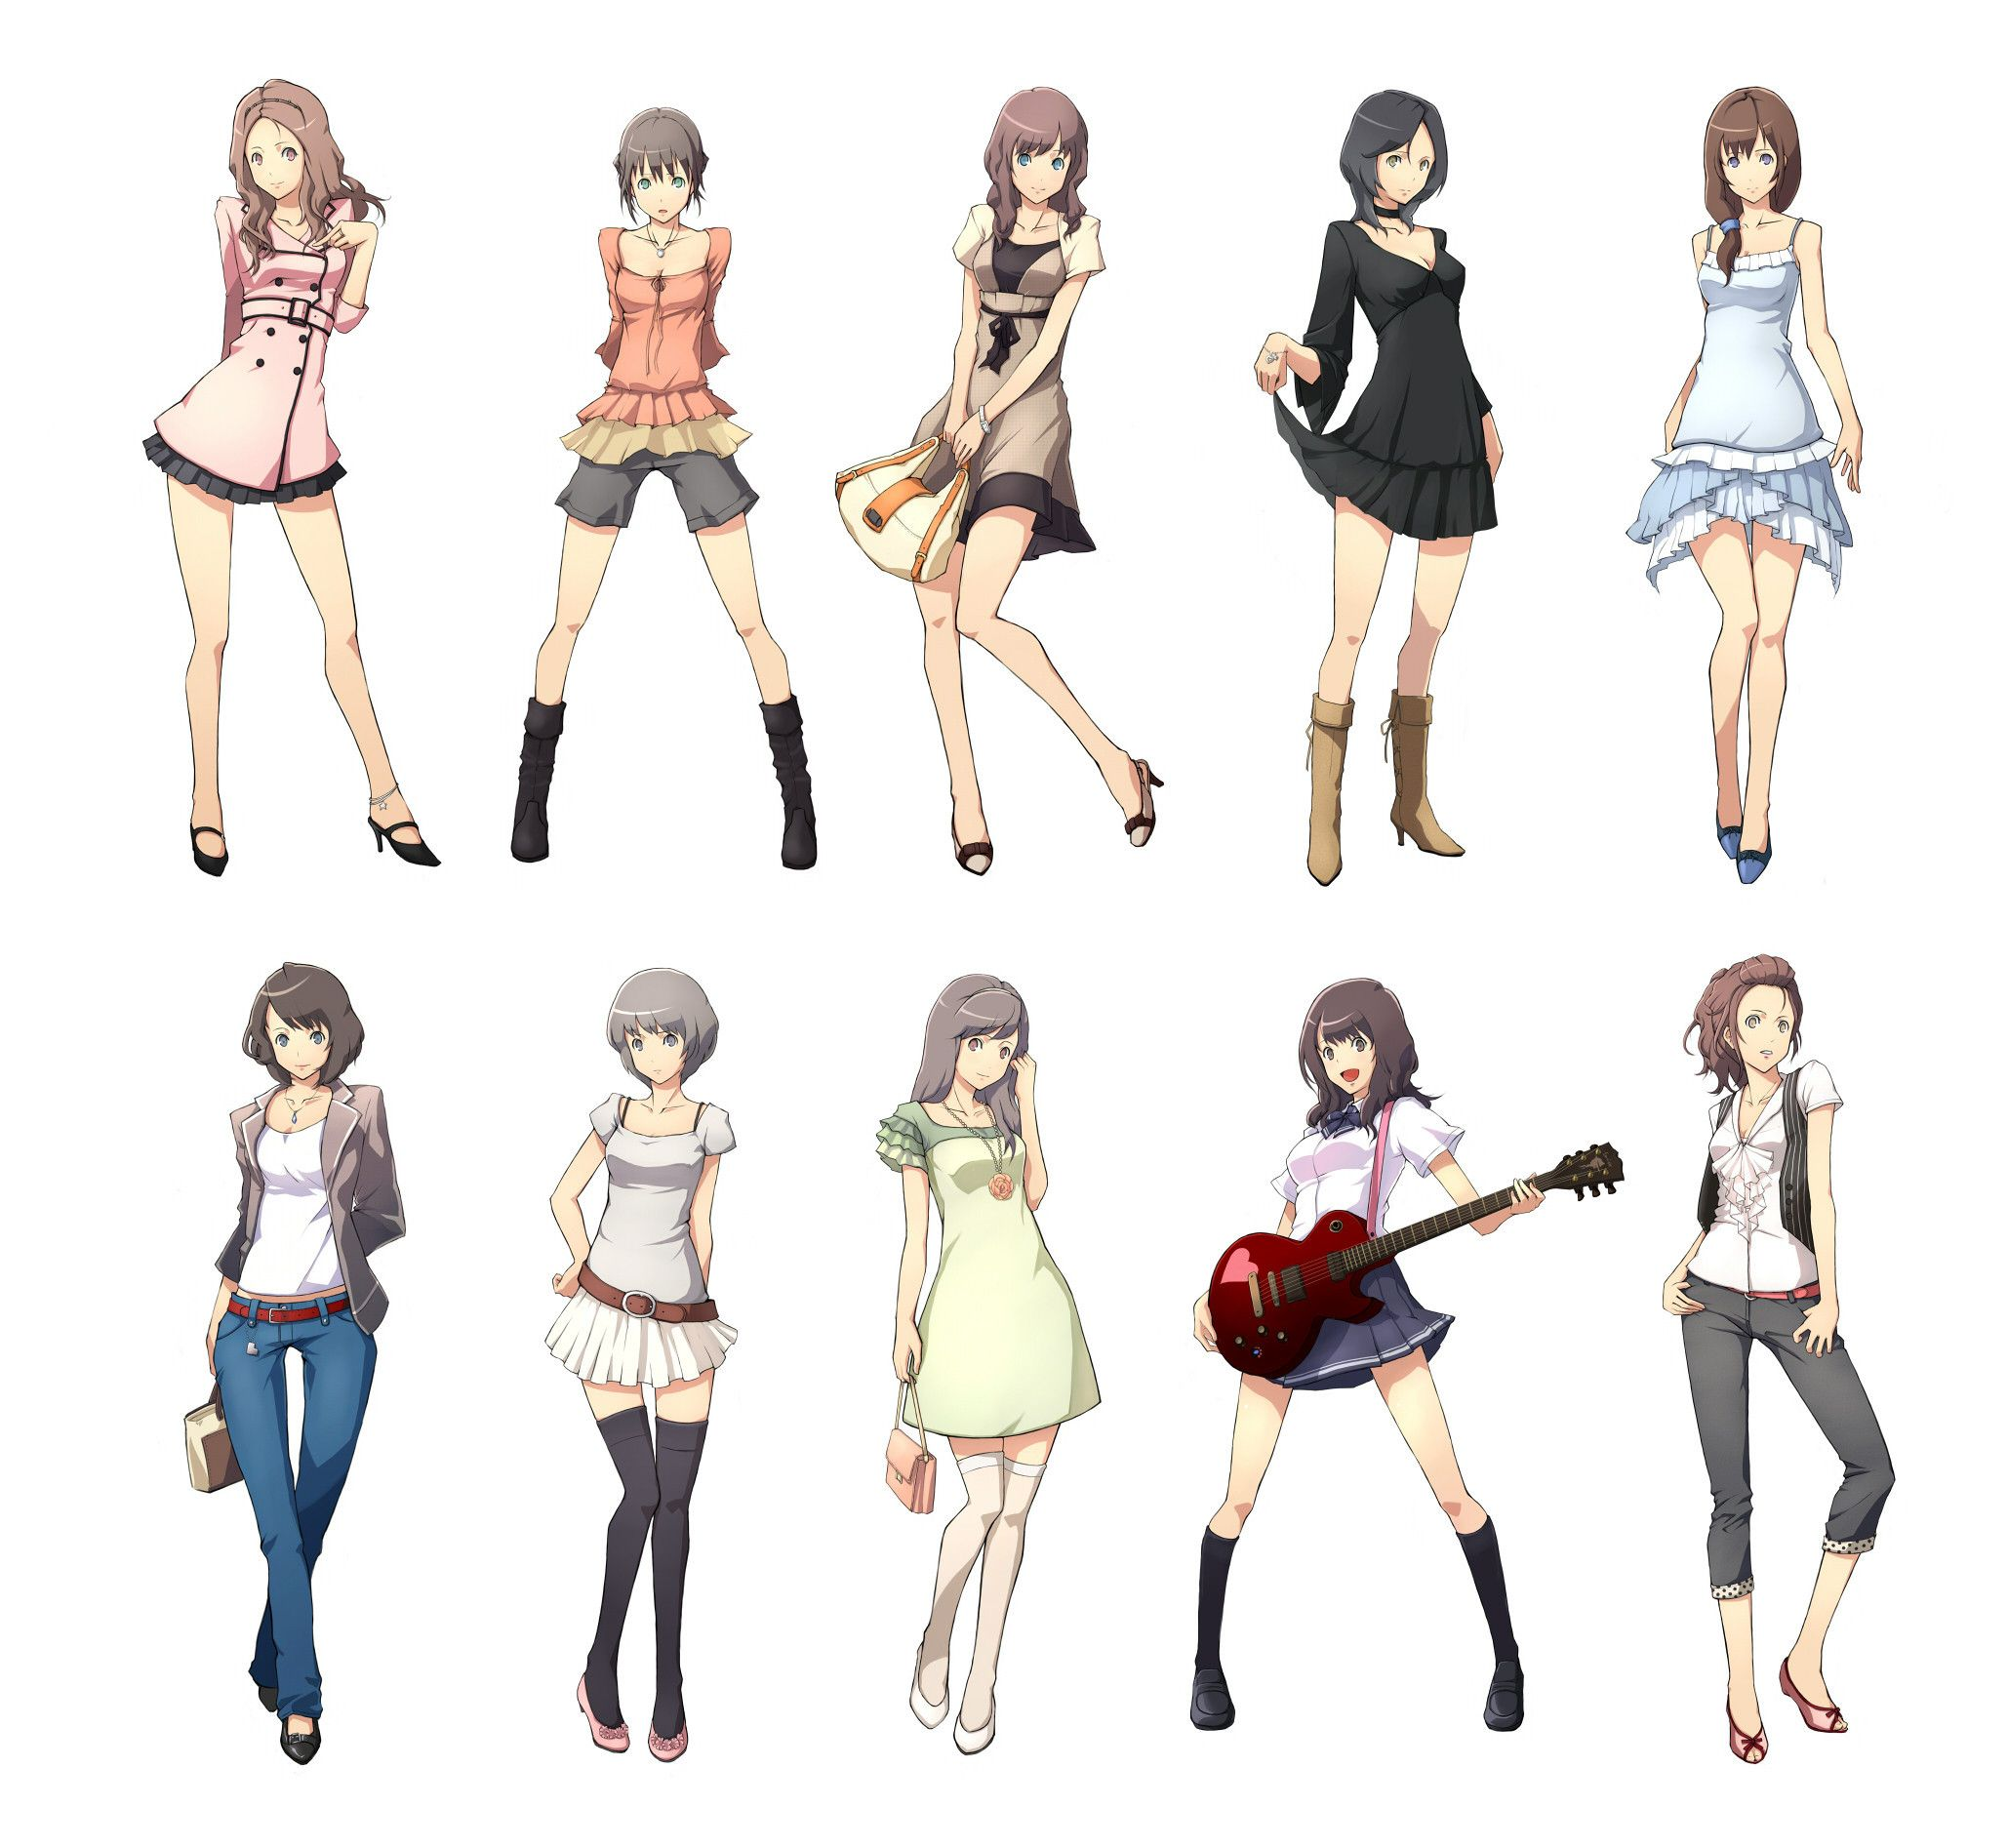 Ooh Different Poses And Styles Of Anime I Think I Might Keep This To Help Me Draw Anime